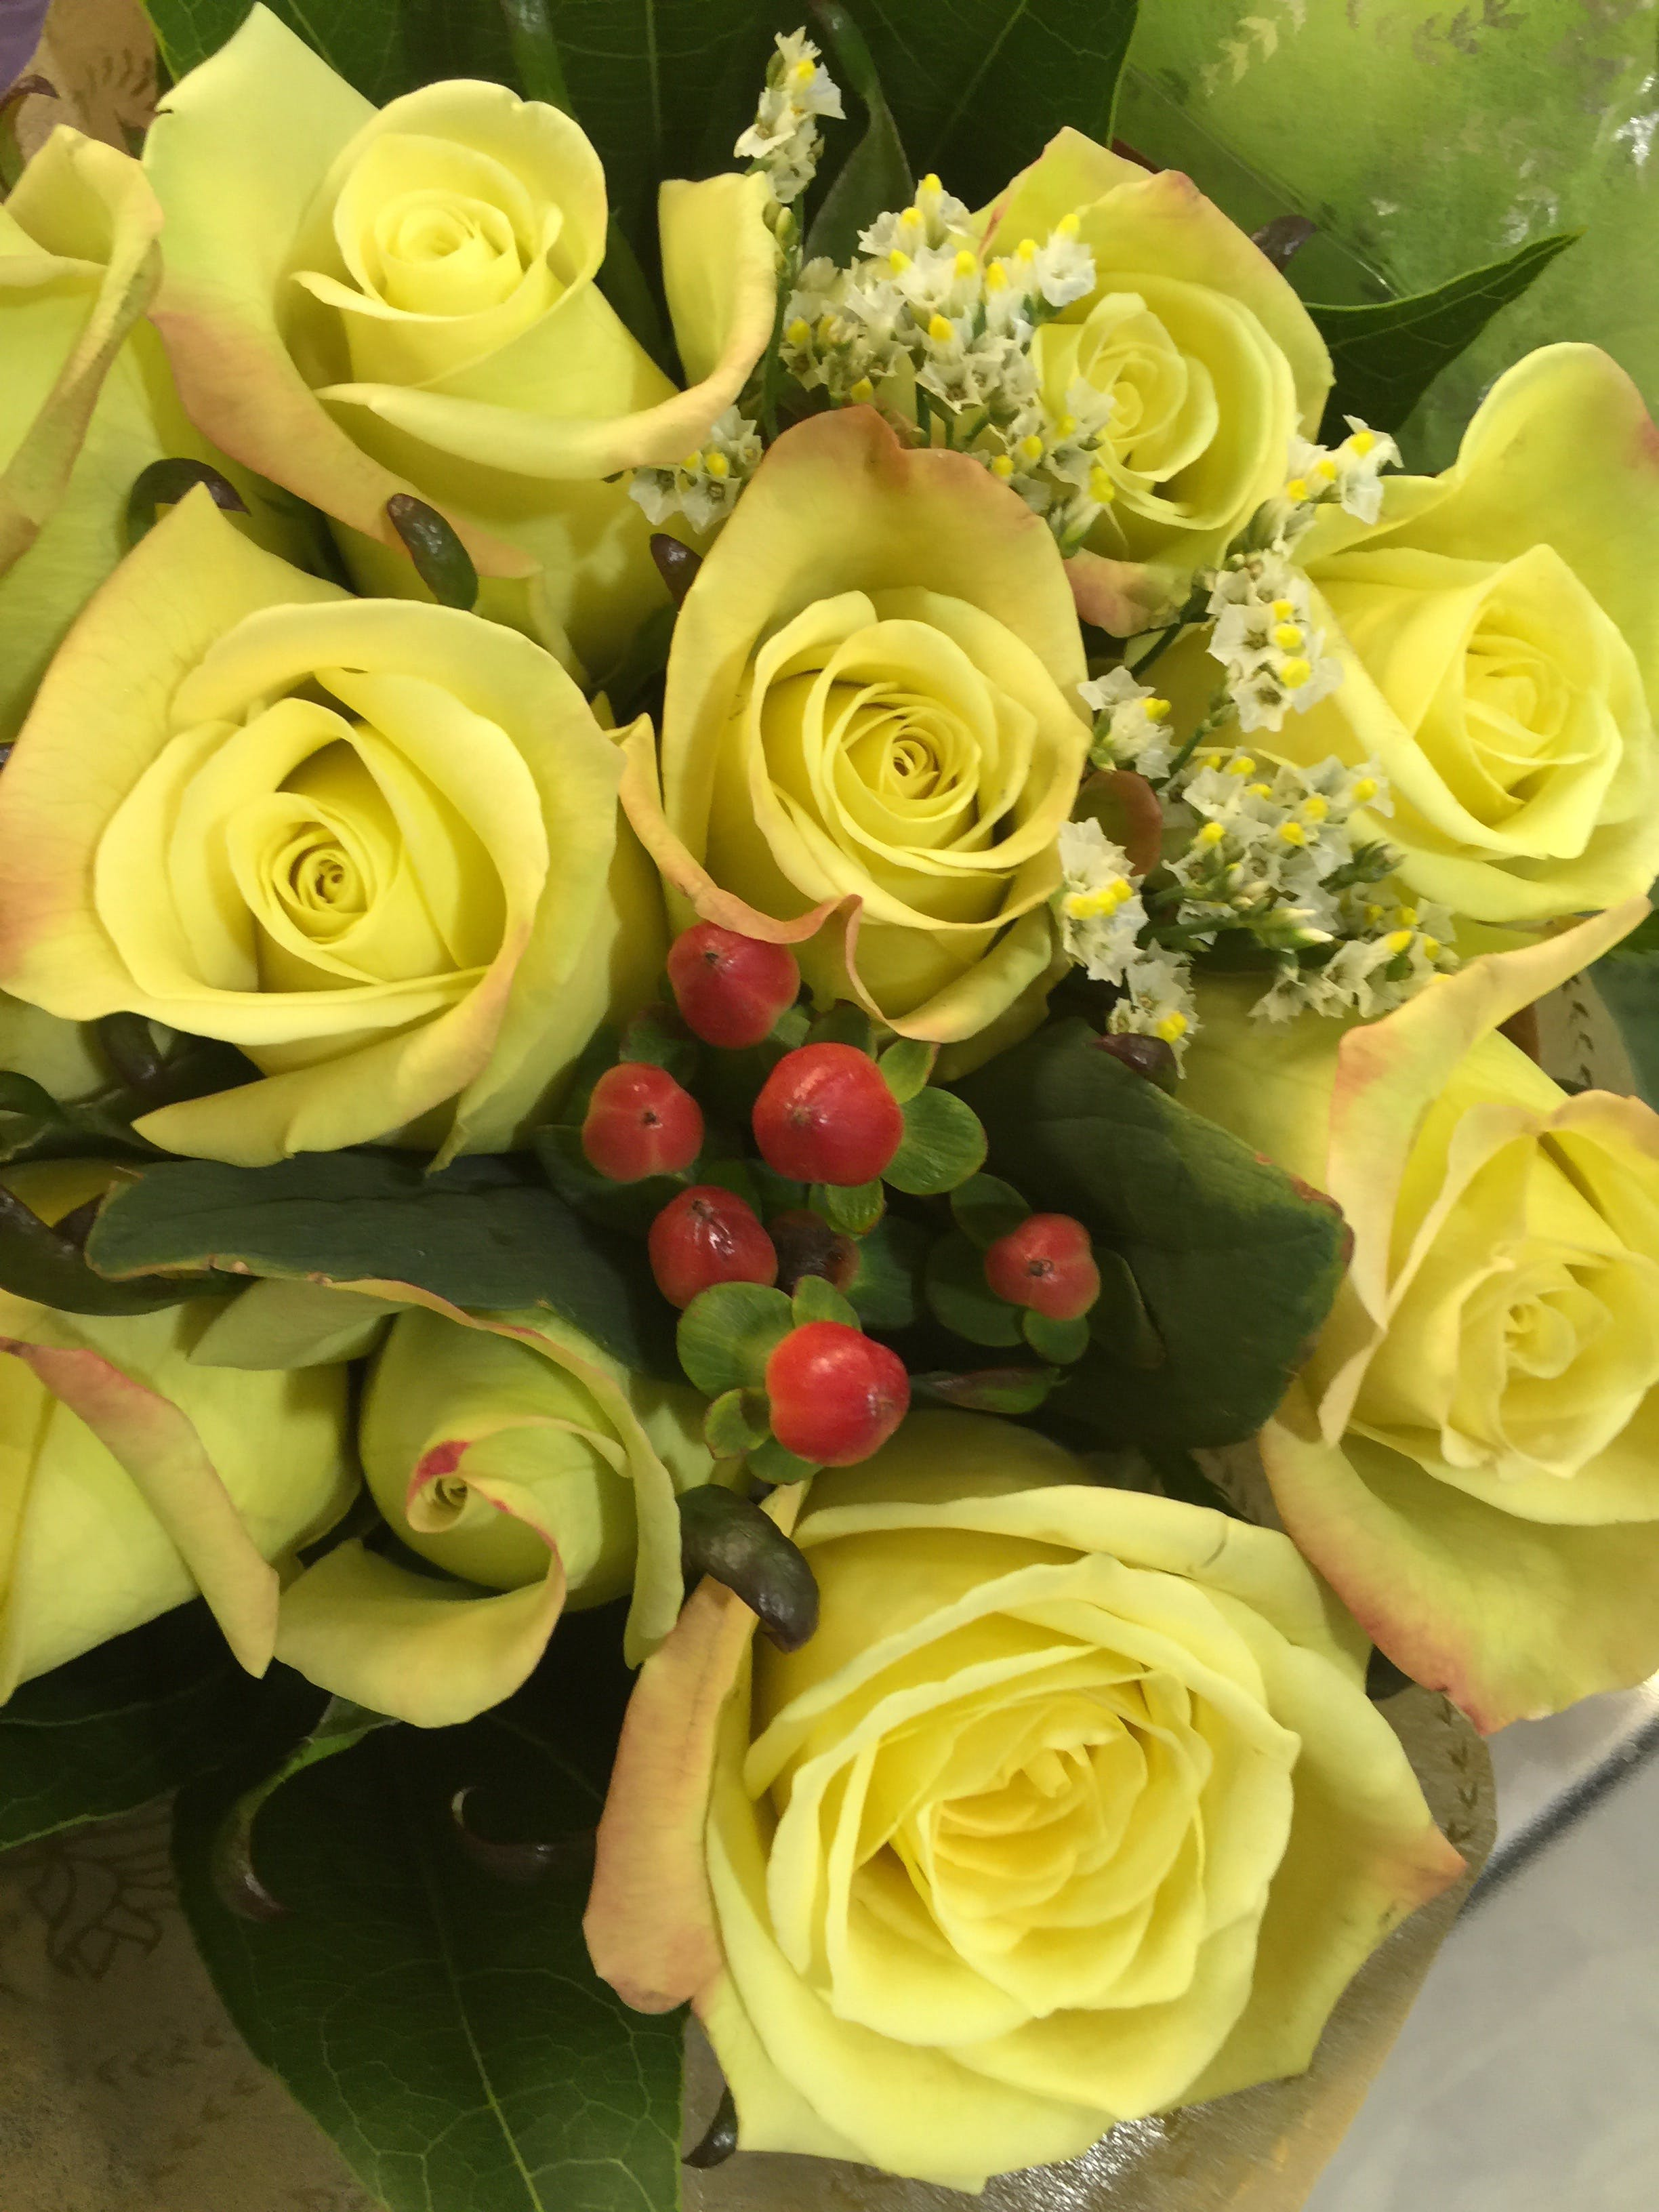 Free stock photo of flowers, roses, yellow flowers